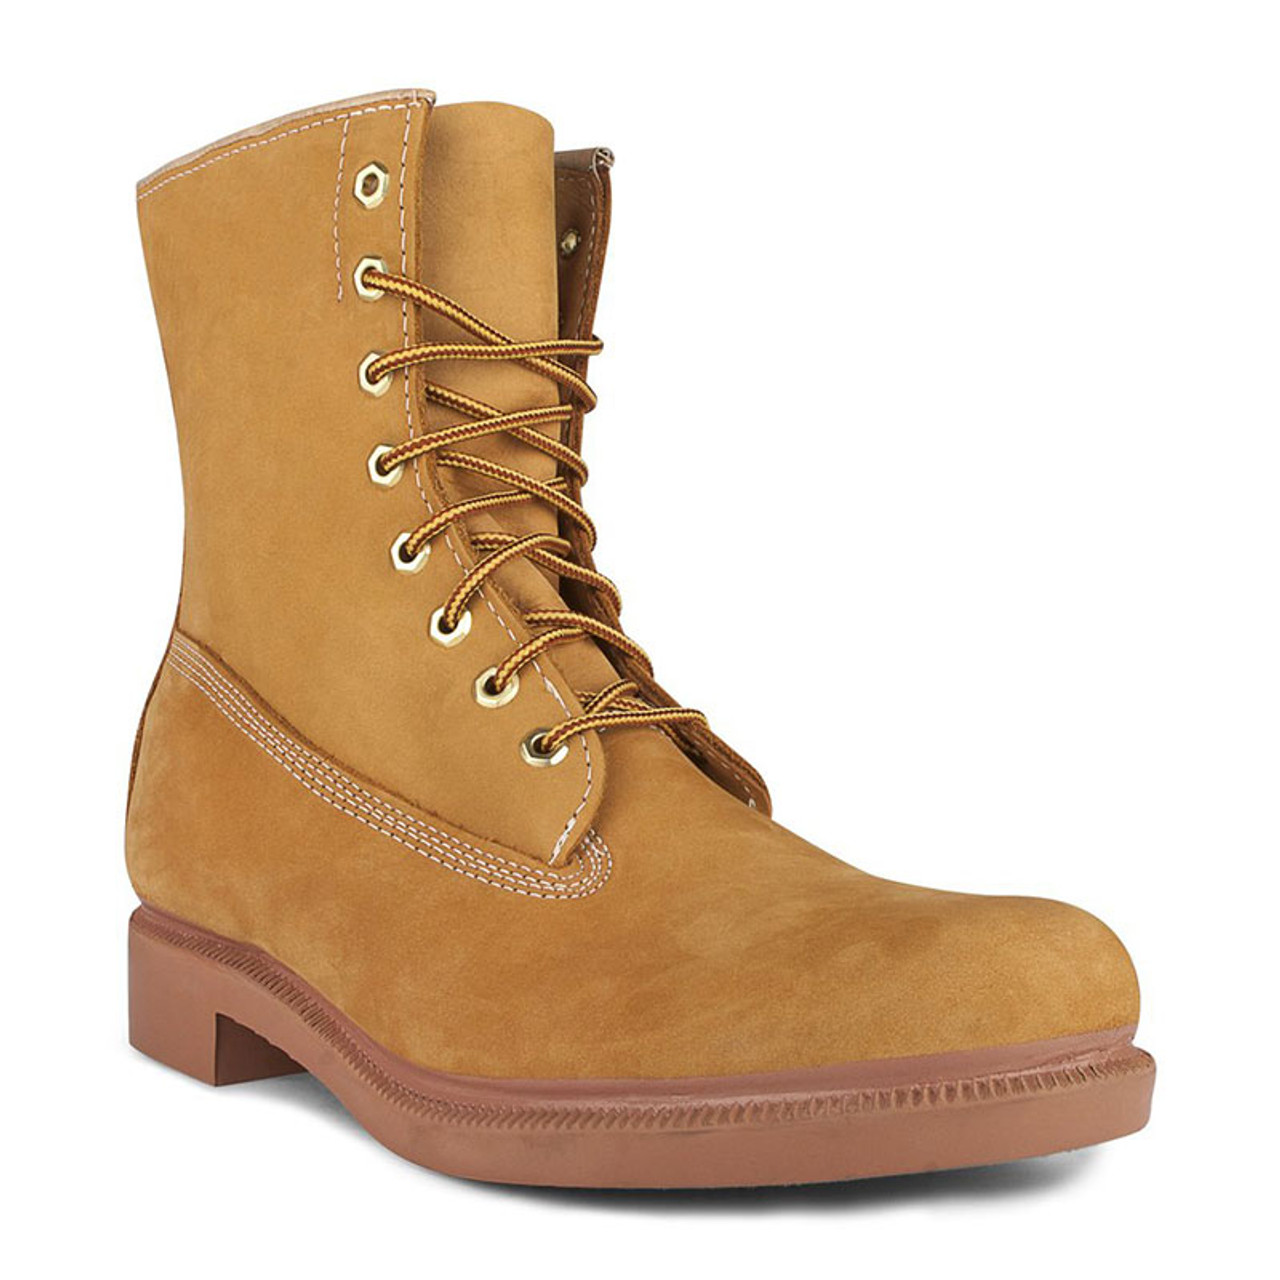 93508705fd0 STC CANADIAN #7701 Work Boots